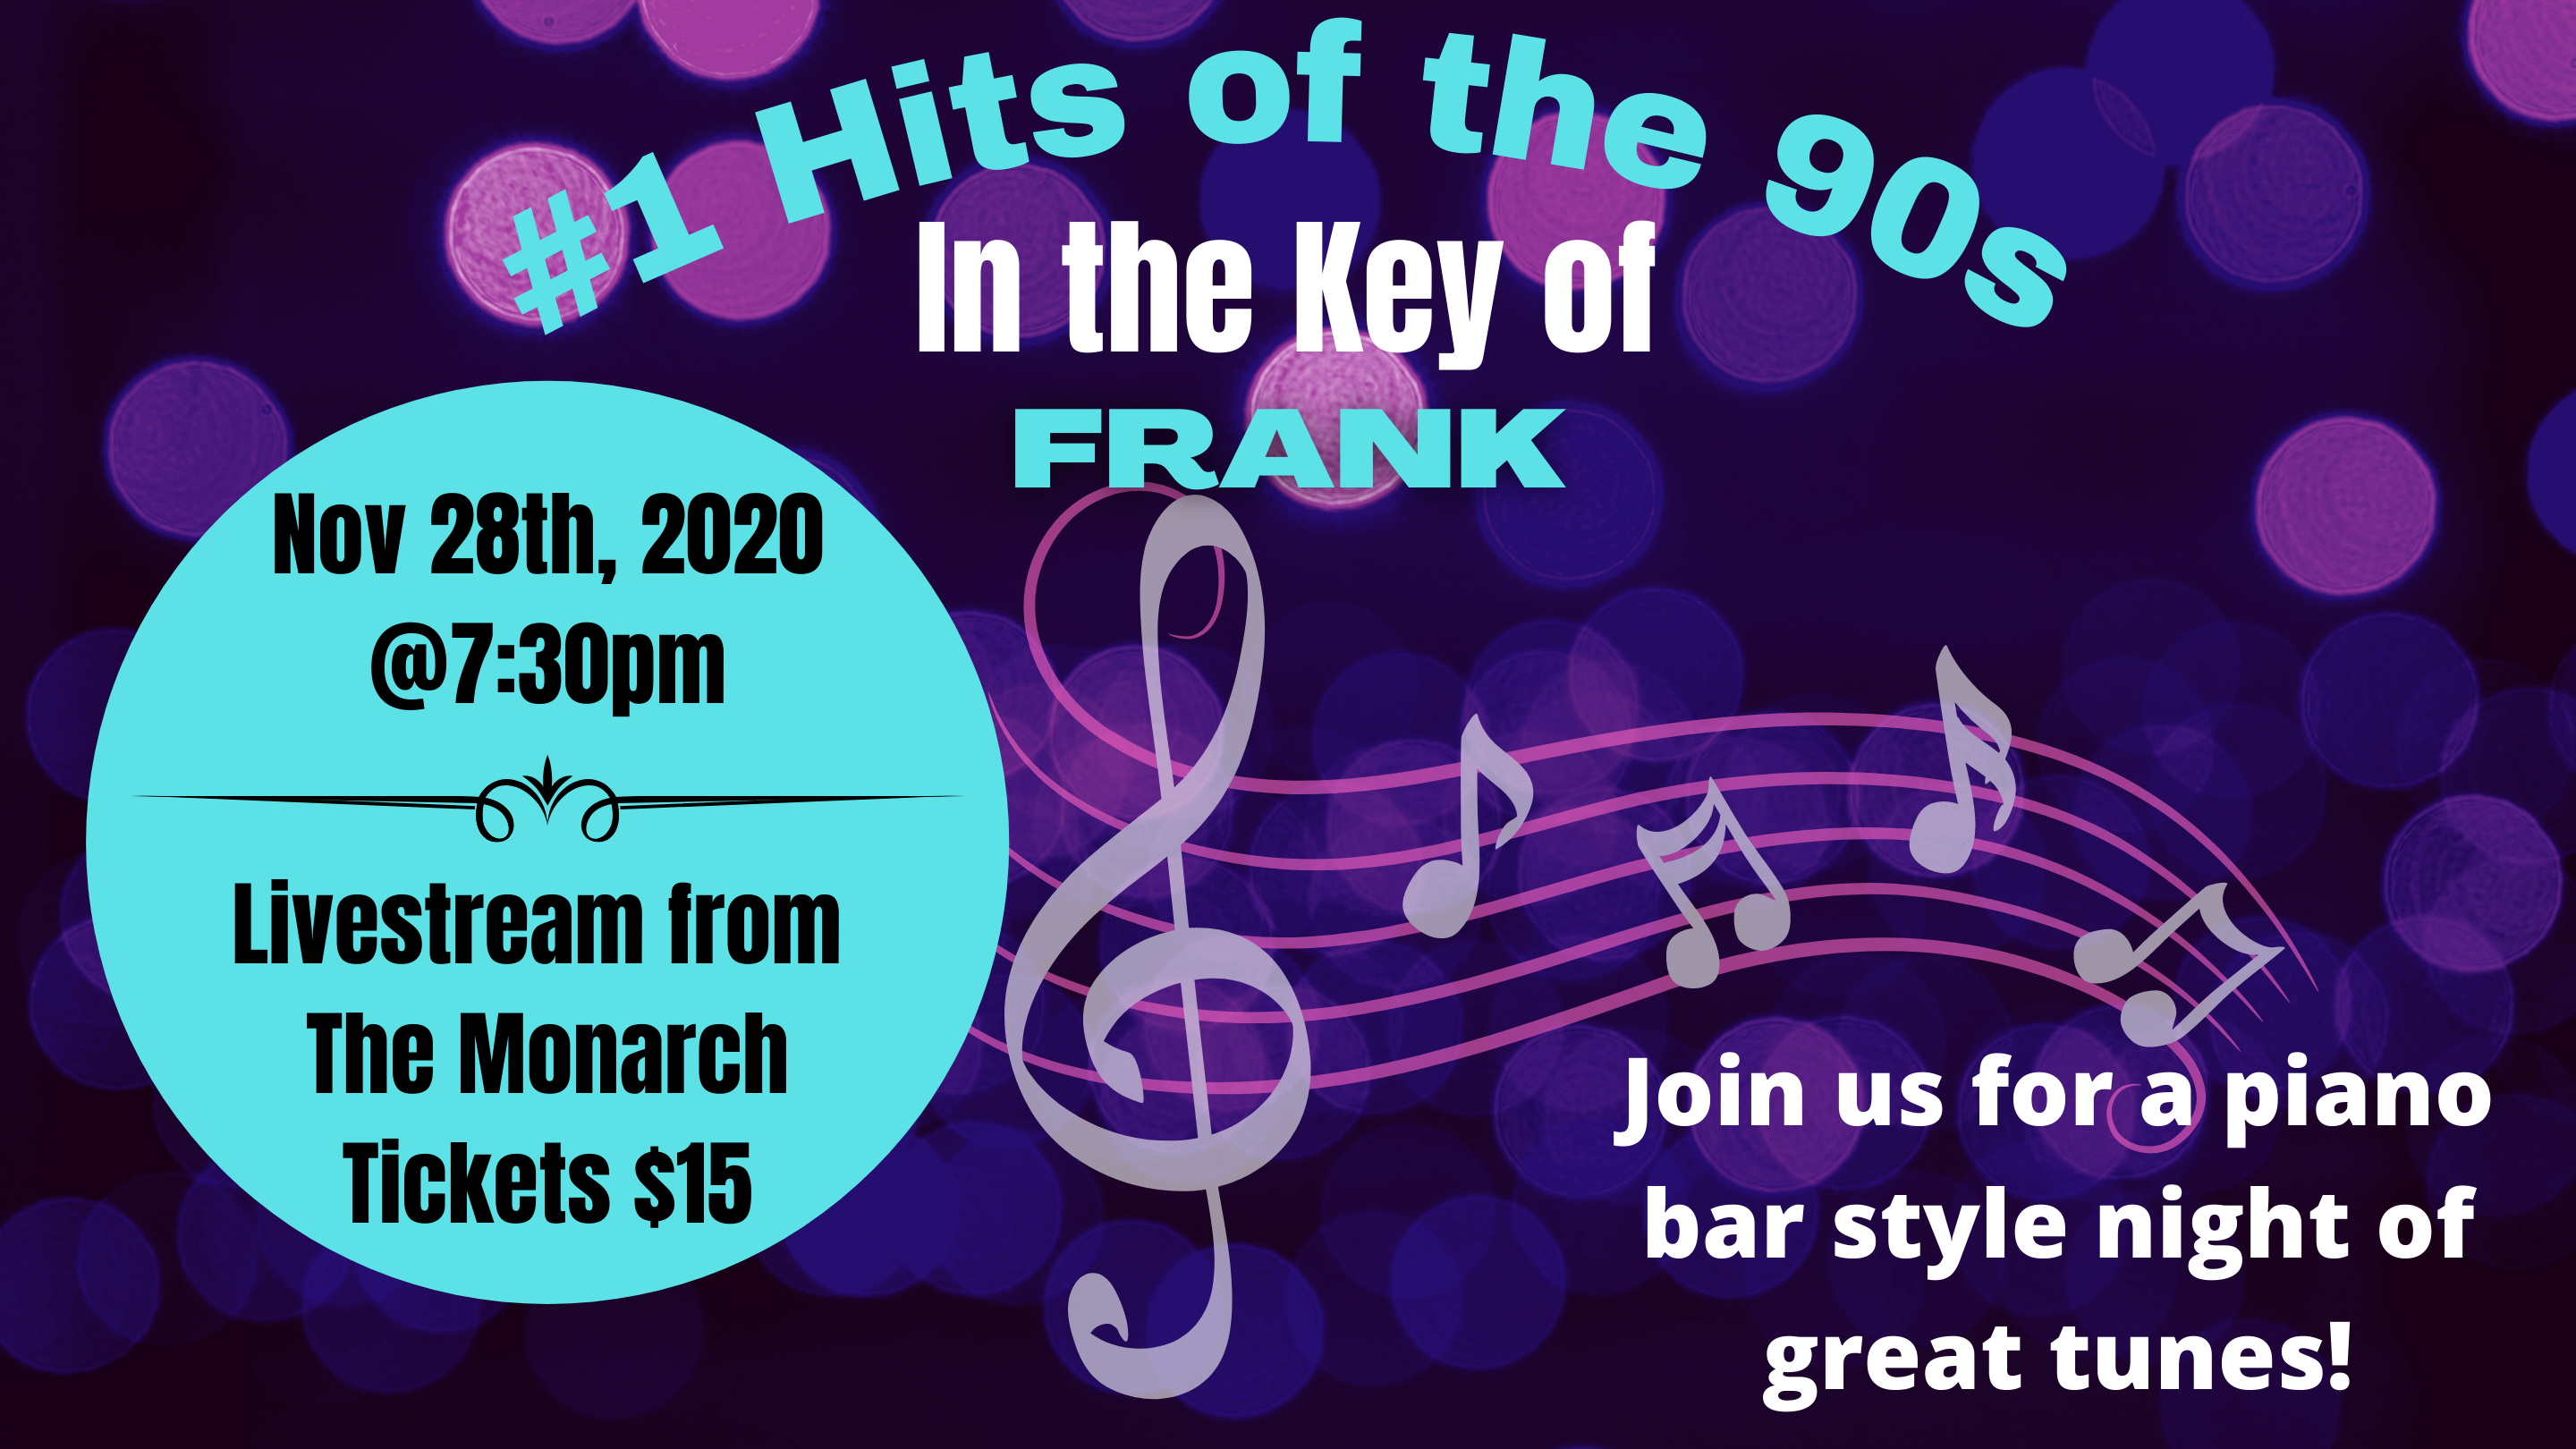 #1 Hits of the 90s: In the Key of Frank